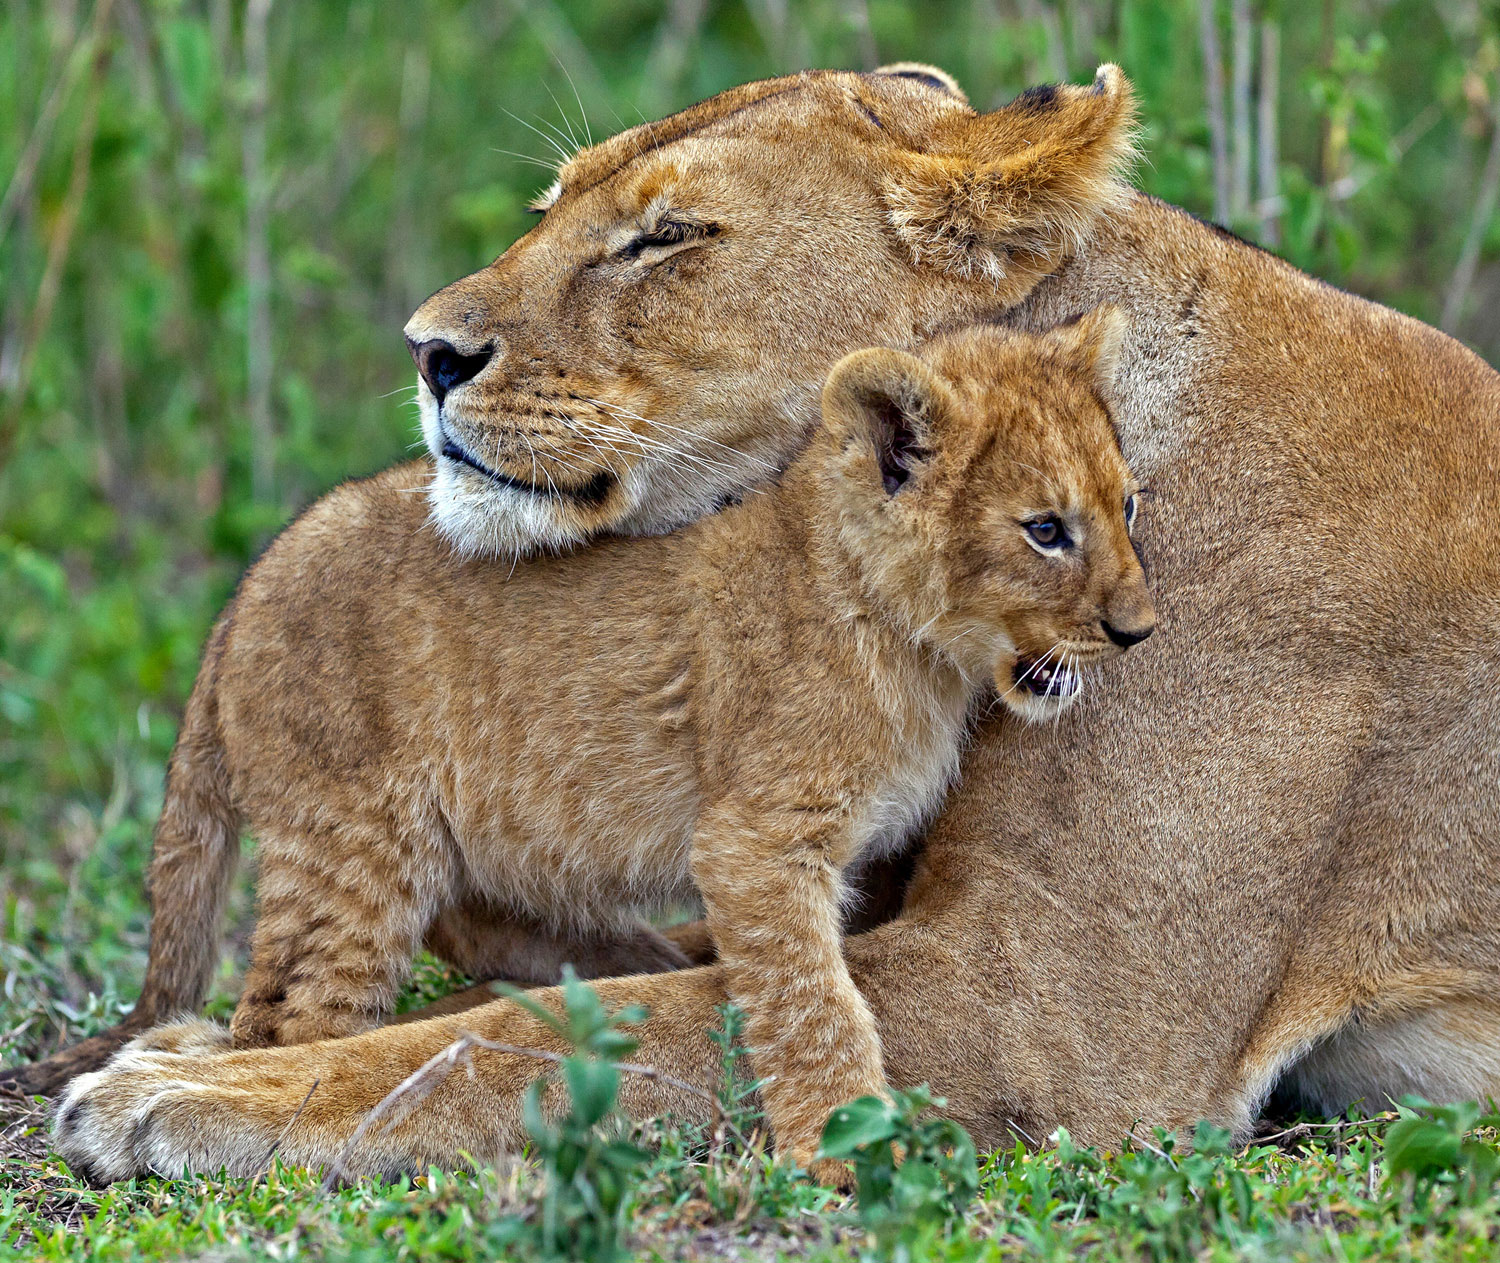 A lion and her cub lay in the grass